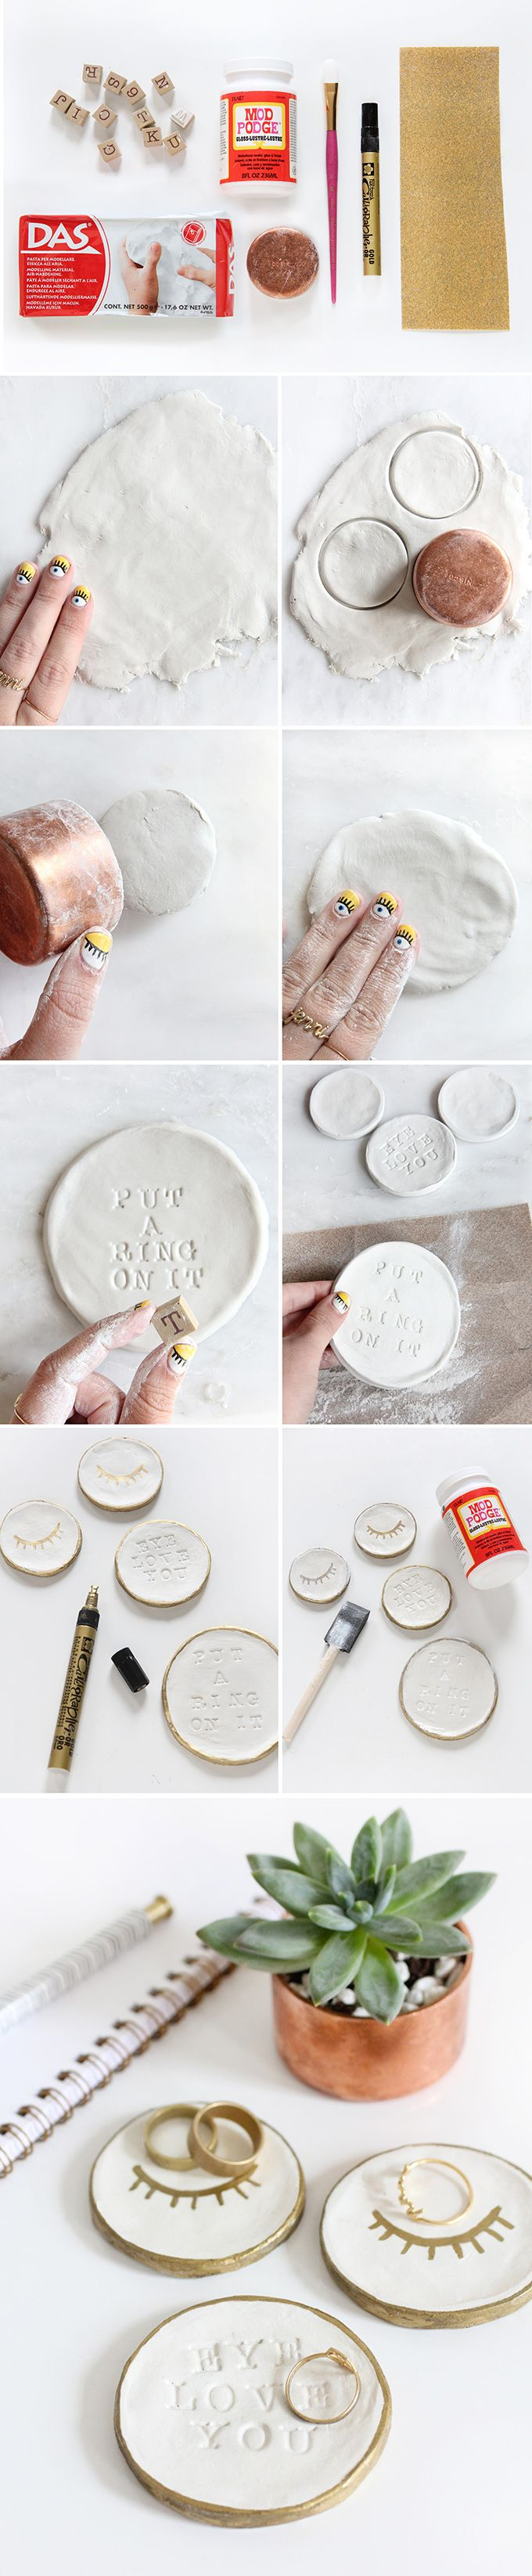 129 best Creative Mom images on Pinterest | Crafts, Creative and ...